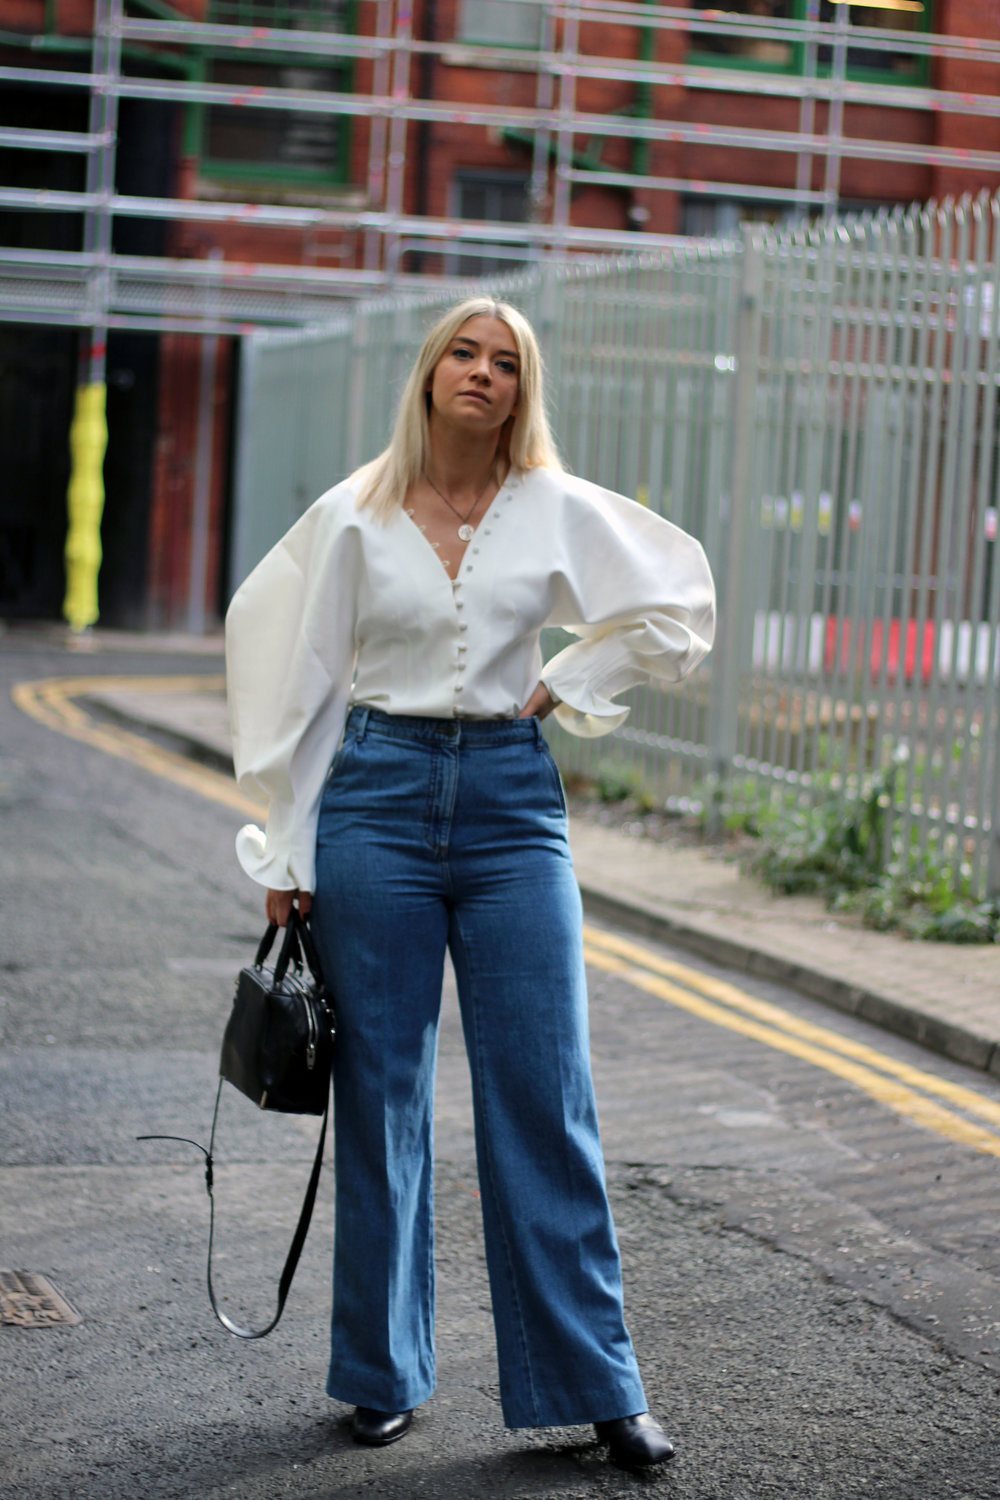 independent brands, instagram shopping, oh hey gilr, white blouse, joey taylor, northern magpie 6